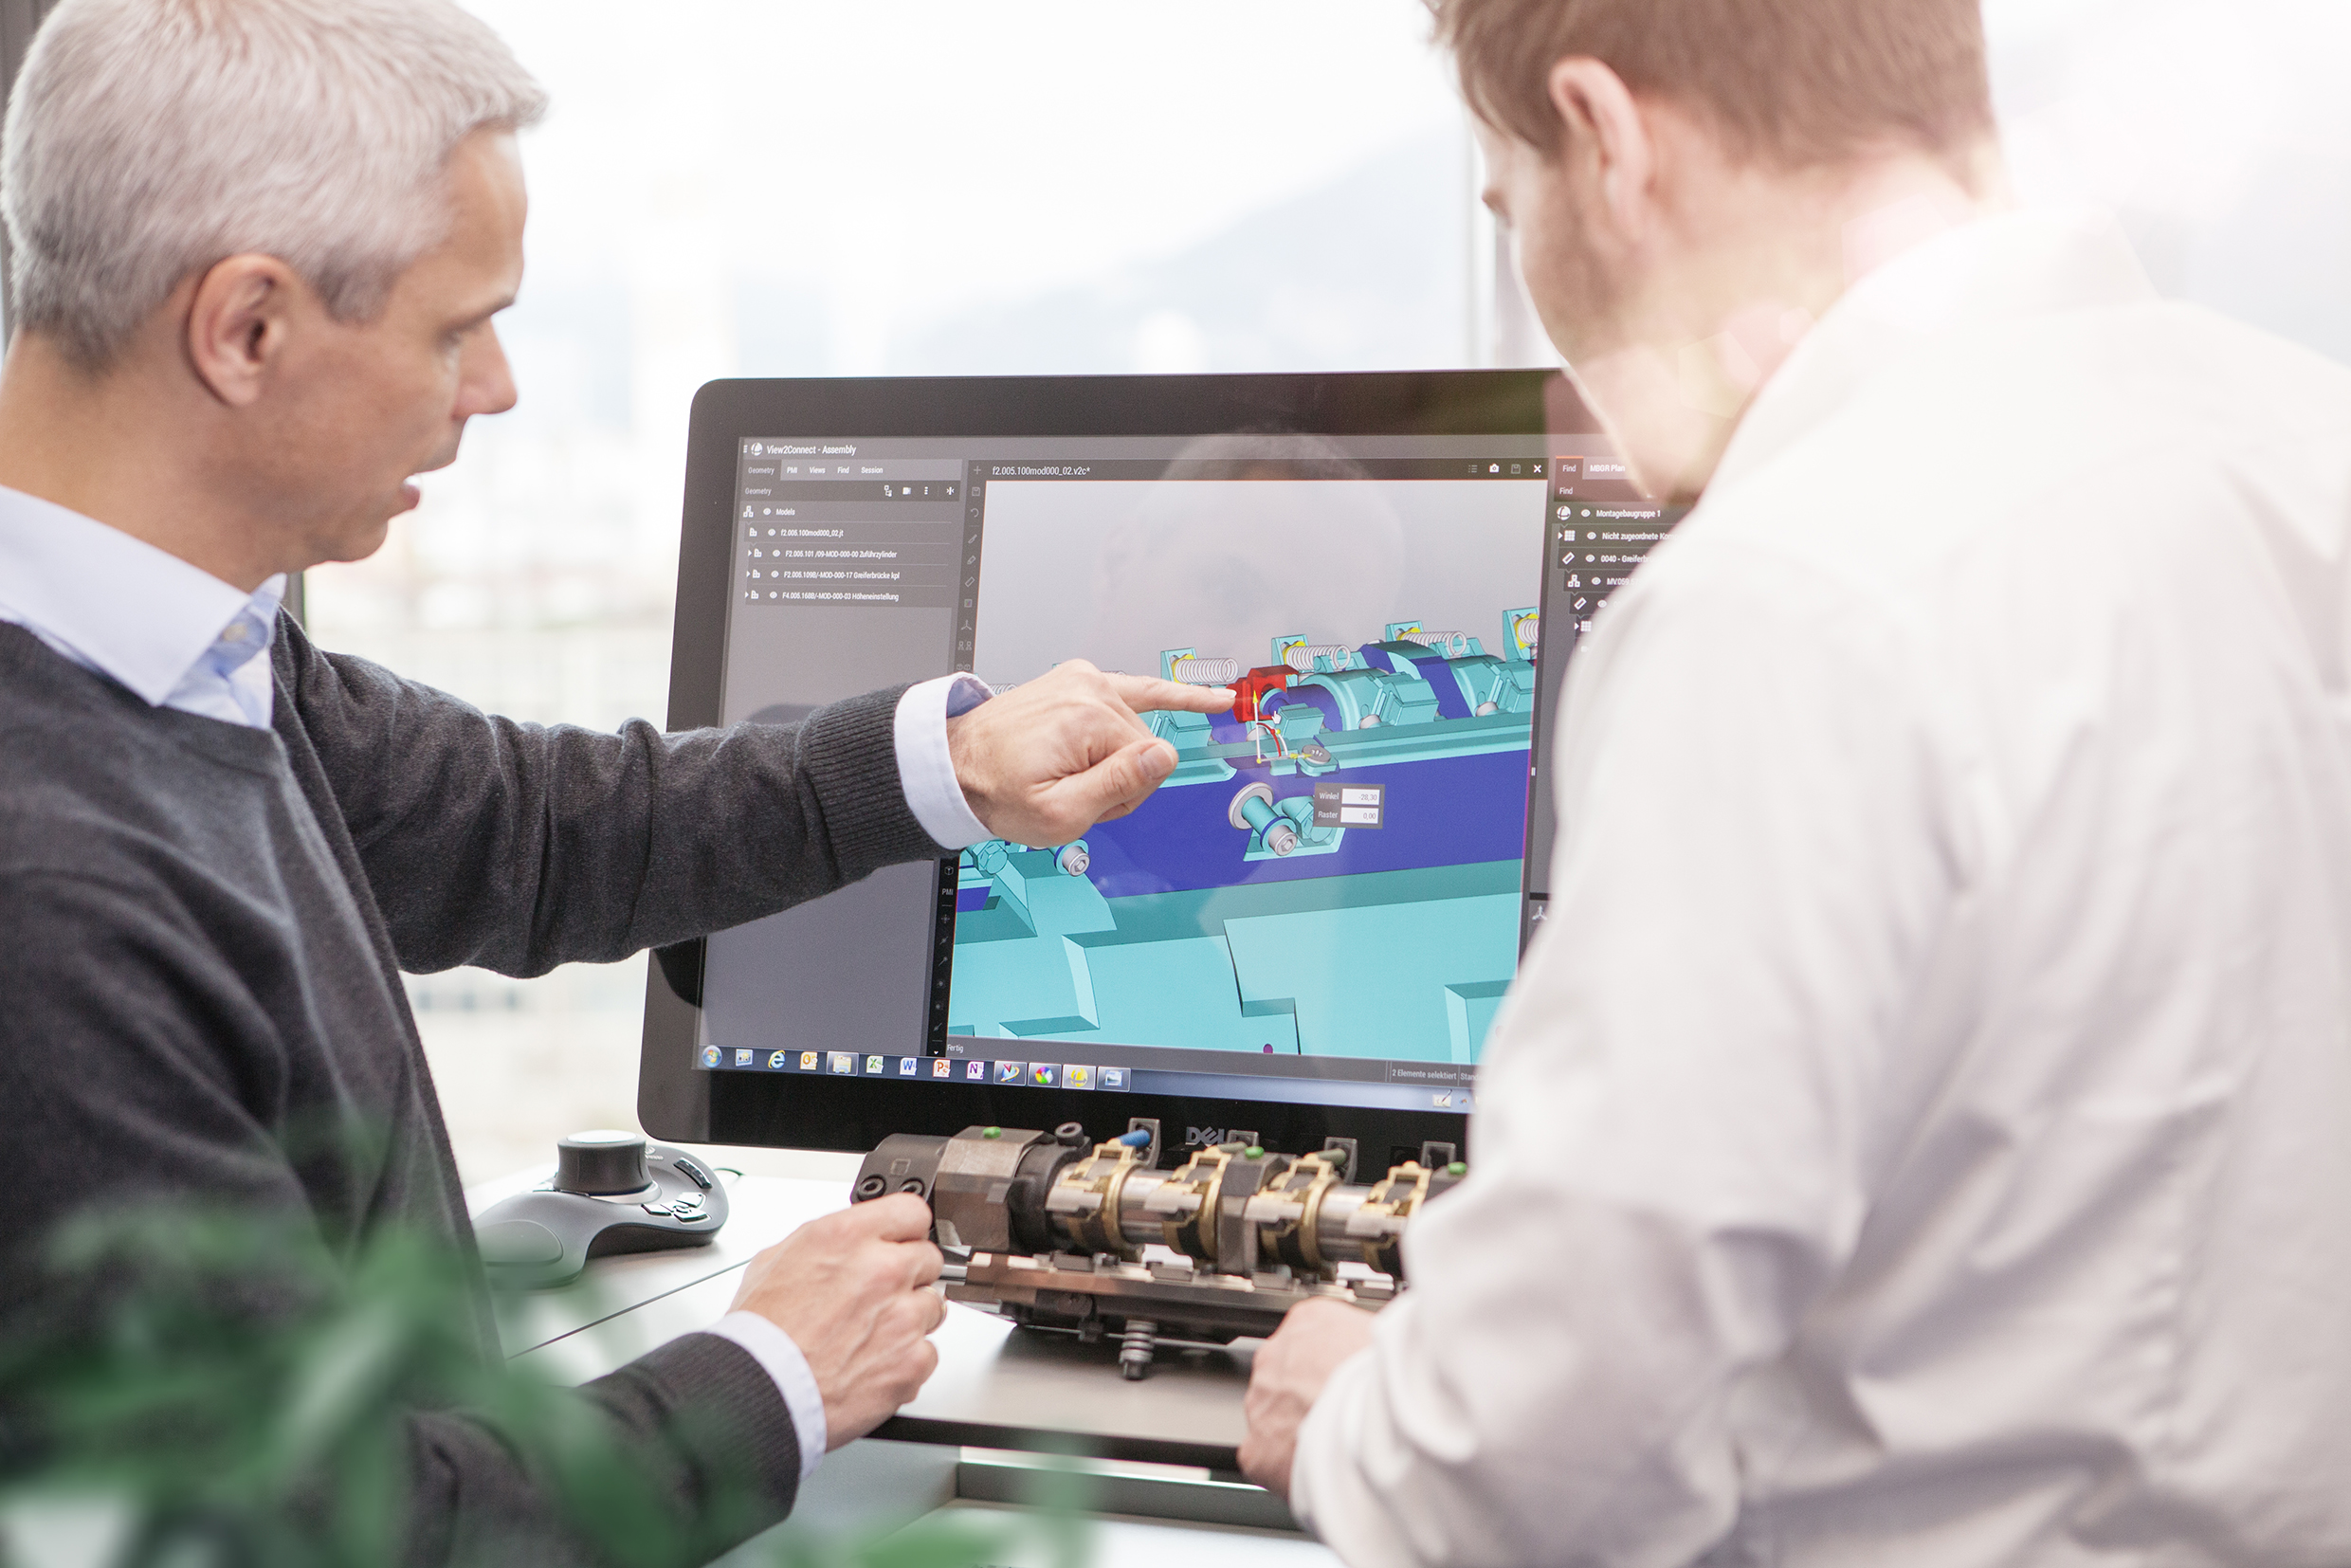 Heidelberg Digital Platforms enables the company to offer industrial customers end-to-end process support in product life cycle management.